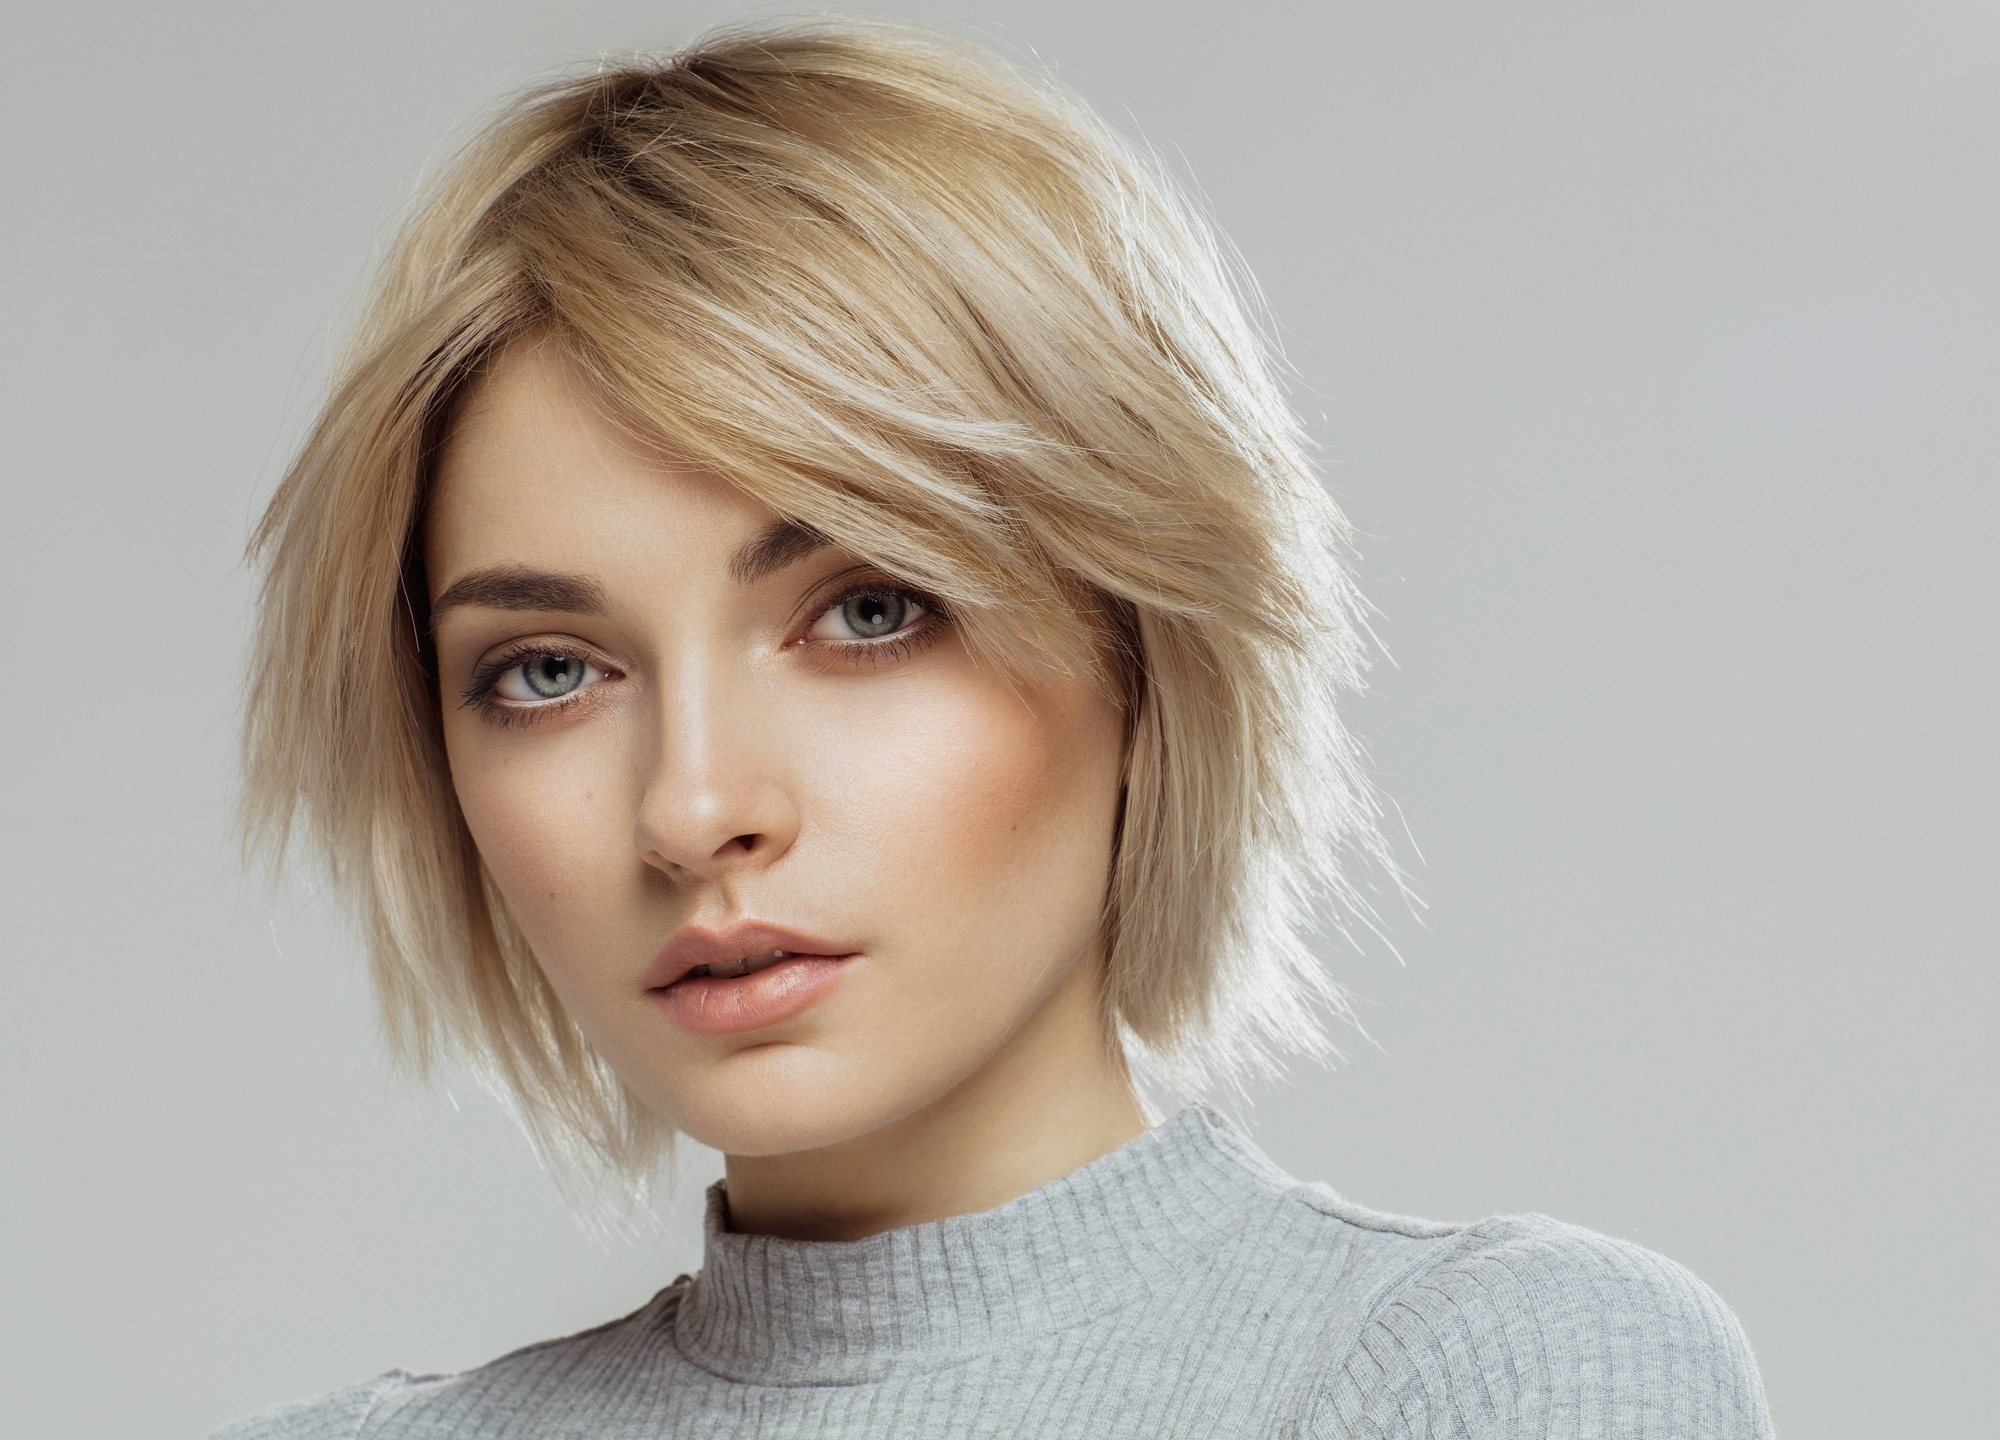 Short blonde hair: Closeup shot of a woman with short layered blonde hair wearing a gray top against a gray background